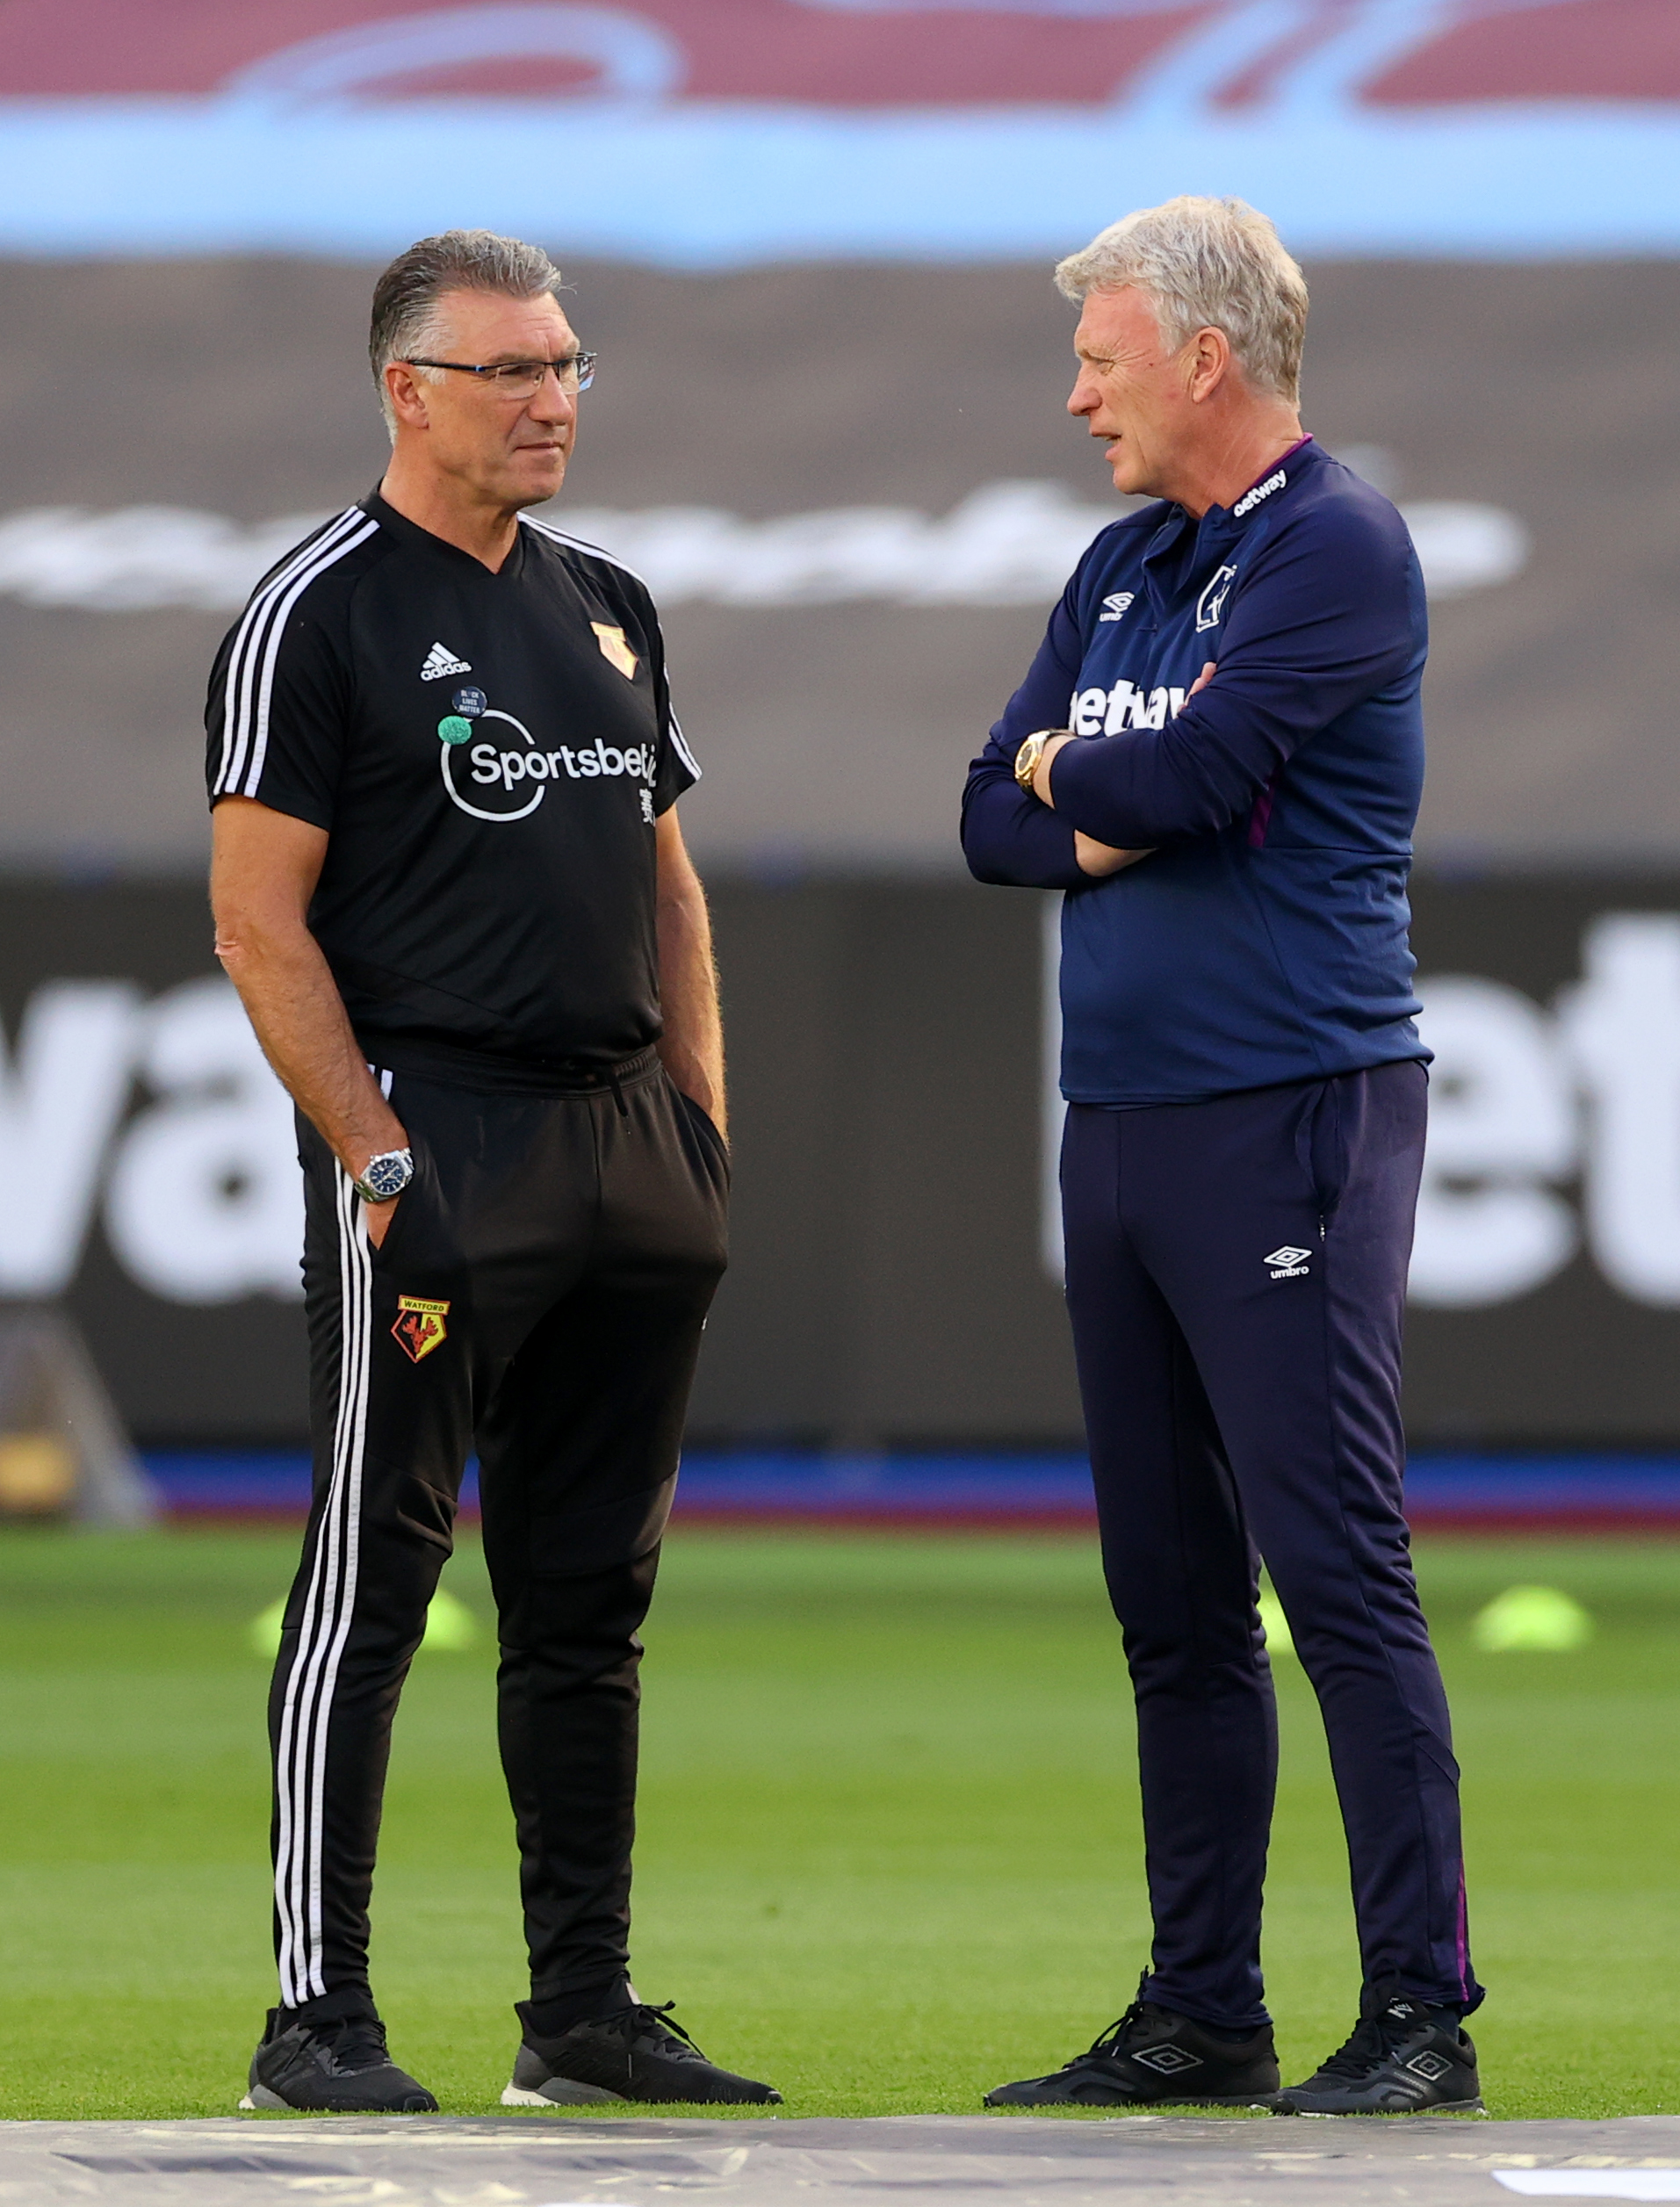 Watford manager Nigel Pearson (left) and West Ham United manager David Moyes speak prior to the Premier League match at the London Stadium.